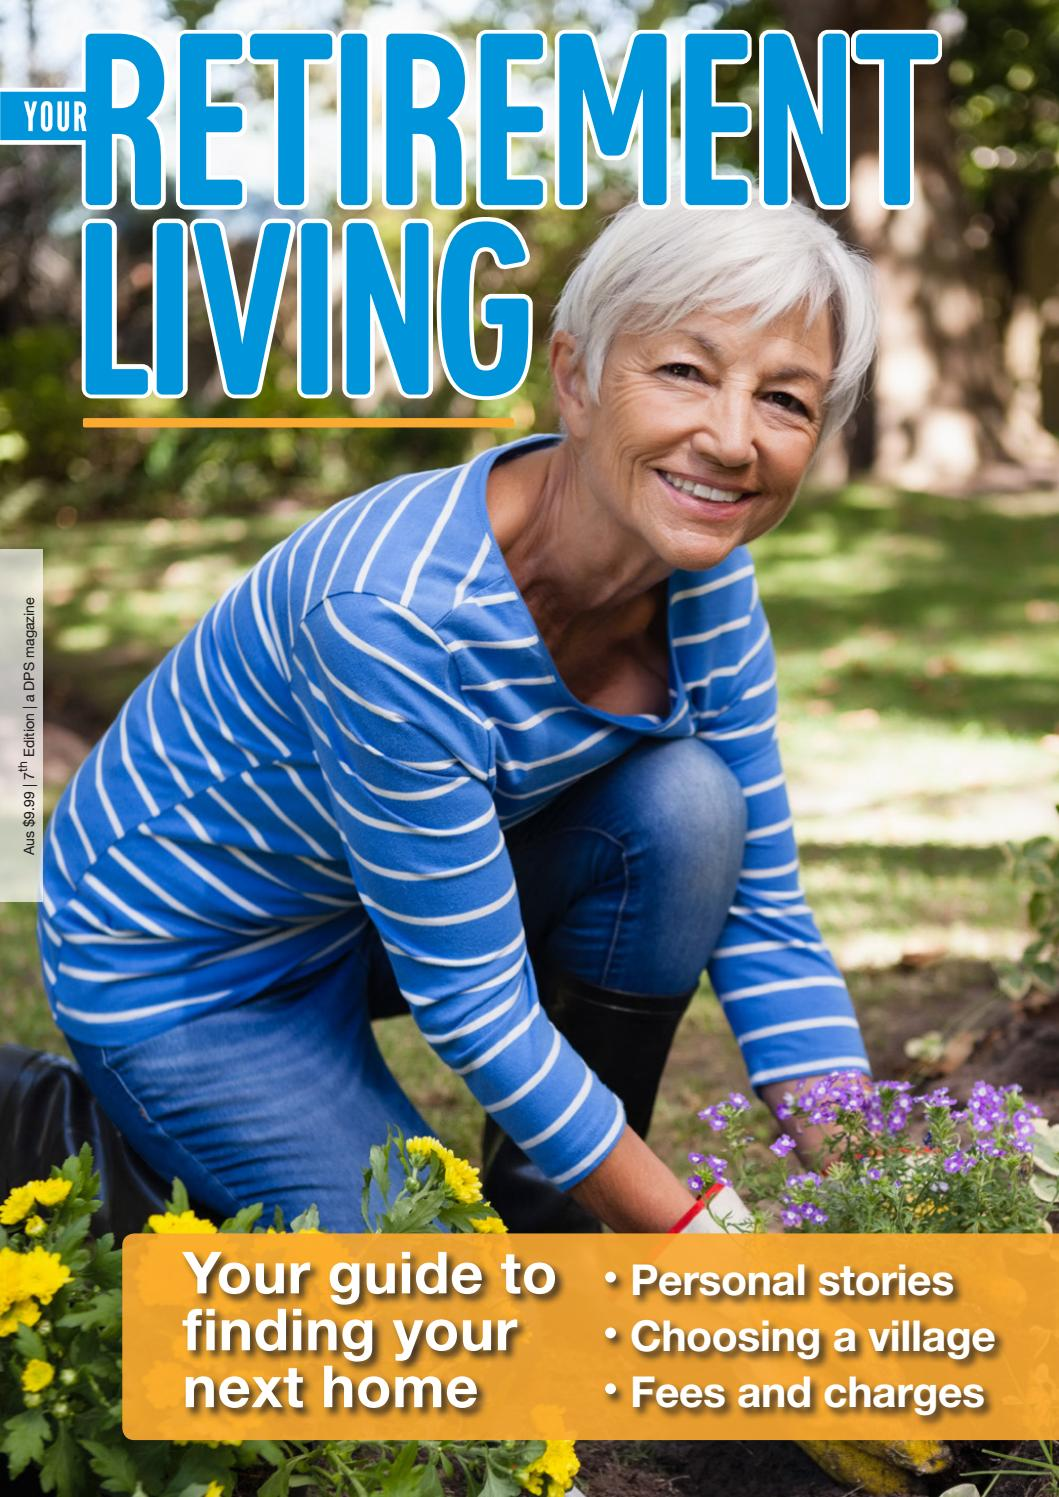 Dps Guide To Your Retirement Living 2019 Full Version By Dps Publishing Issuu